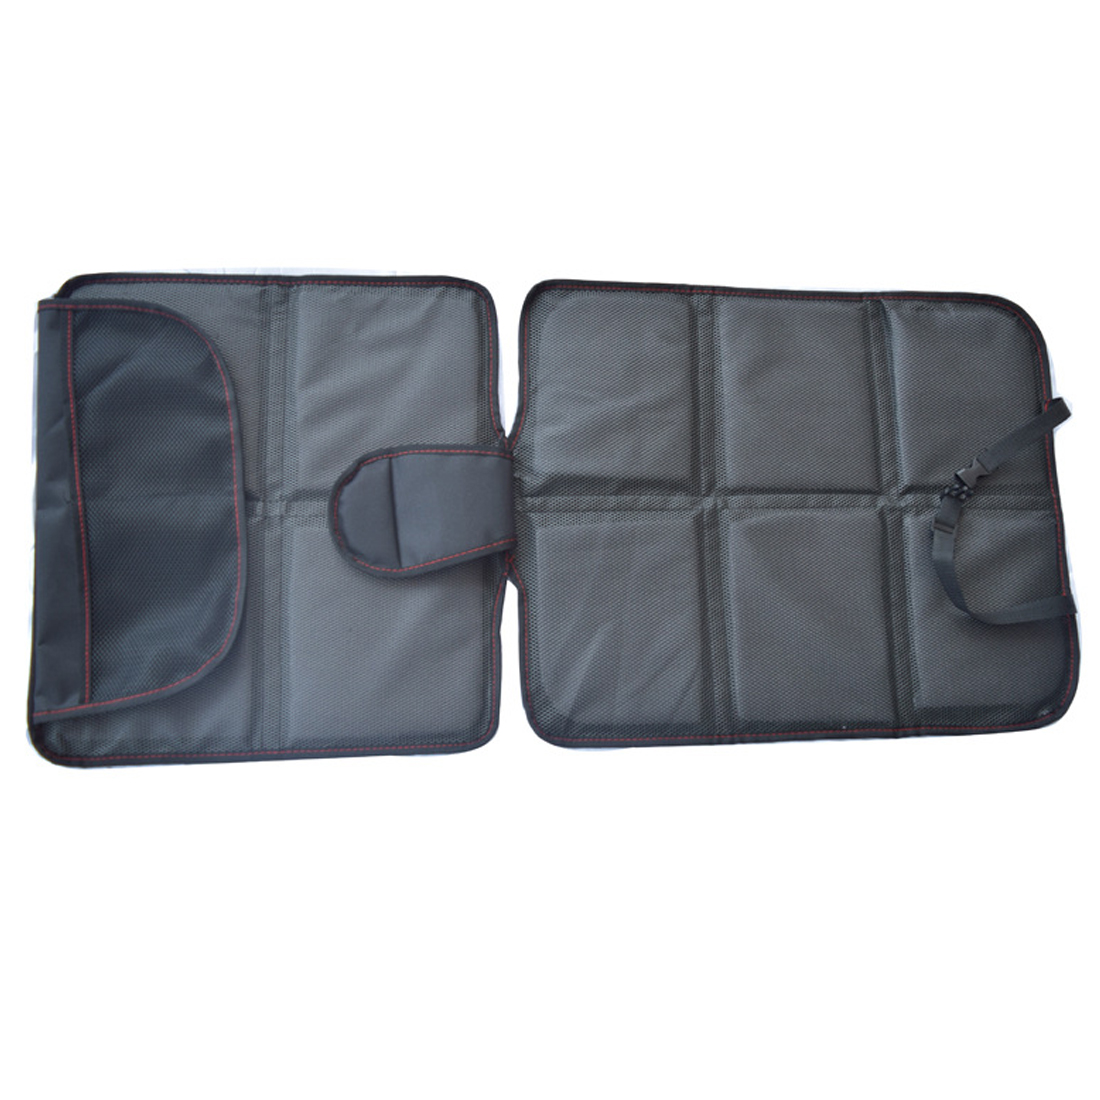 Dewtreetali selling Easy Clean Car Seat Cover Car Interial Seat Protector Mat Auto Baby Car Seat Covers Black For Four Season